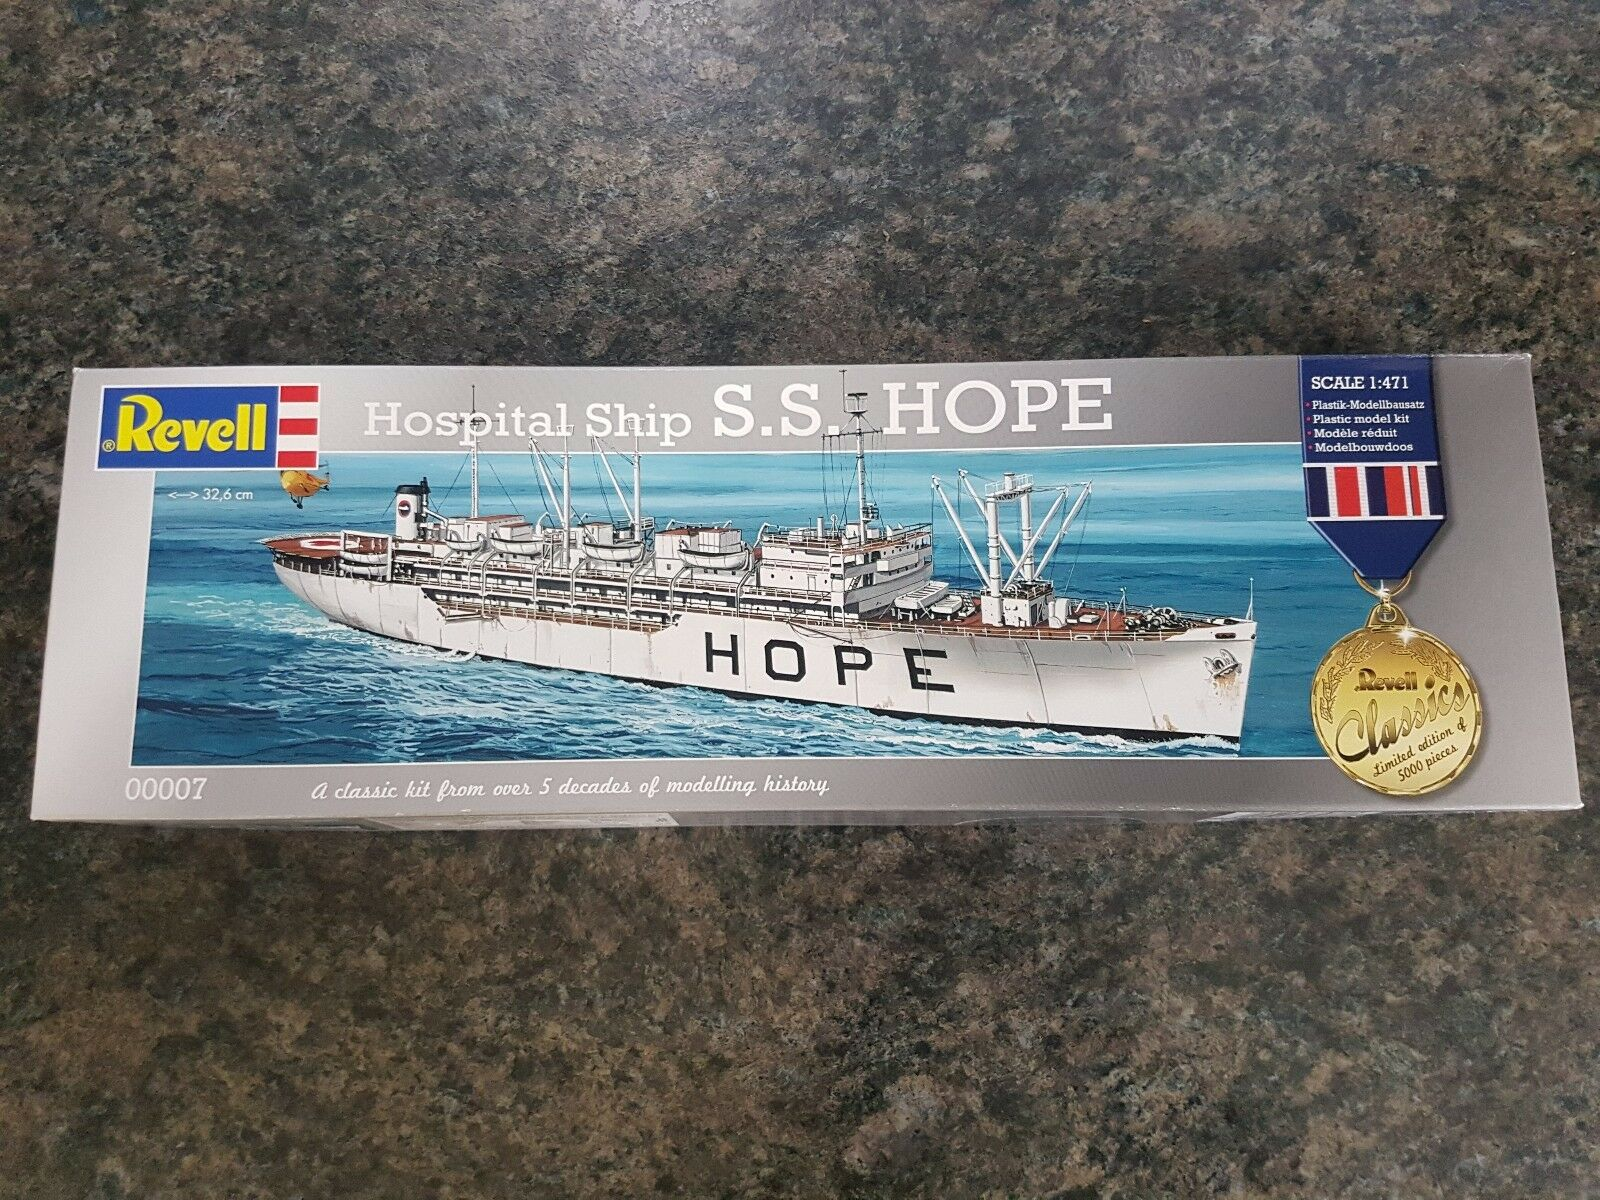 Revell Classics 1 471 Hospital Ship S.S Hope Great Condition Very Rare